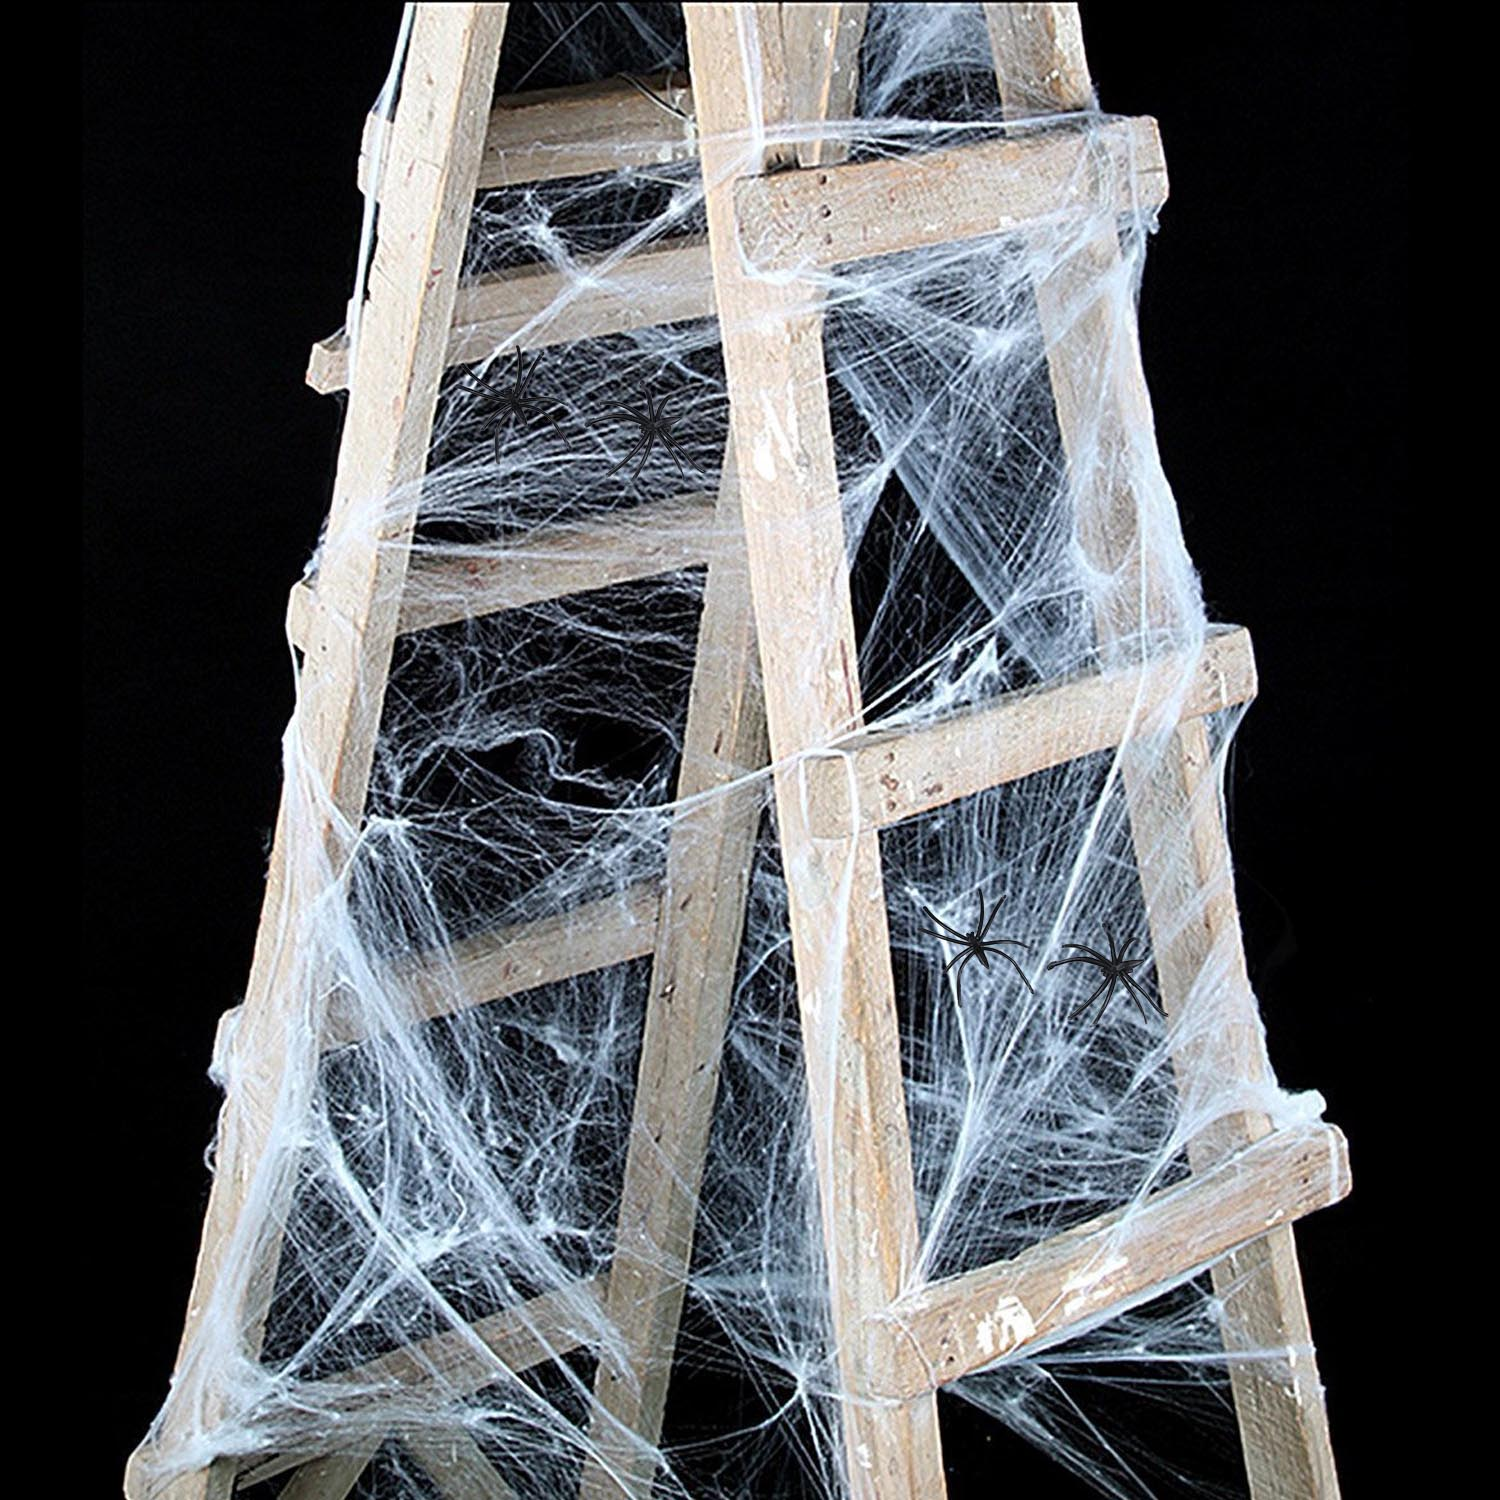 taos 6 pcsset disposable white halloween party spiderweb decoration spider webs webbing cobwebs